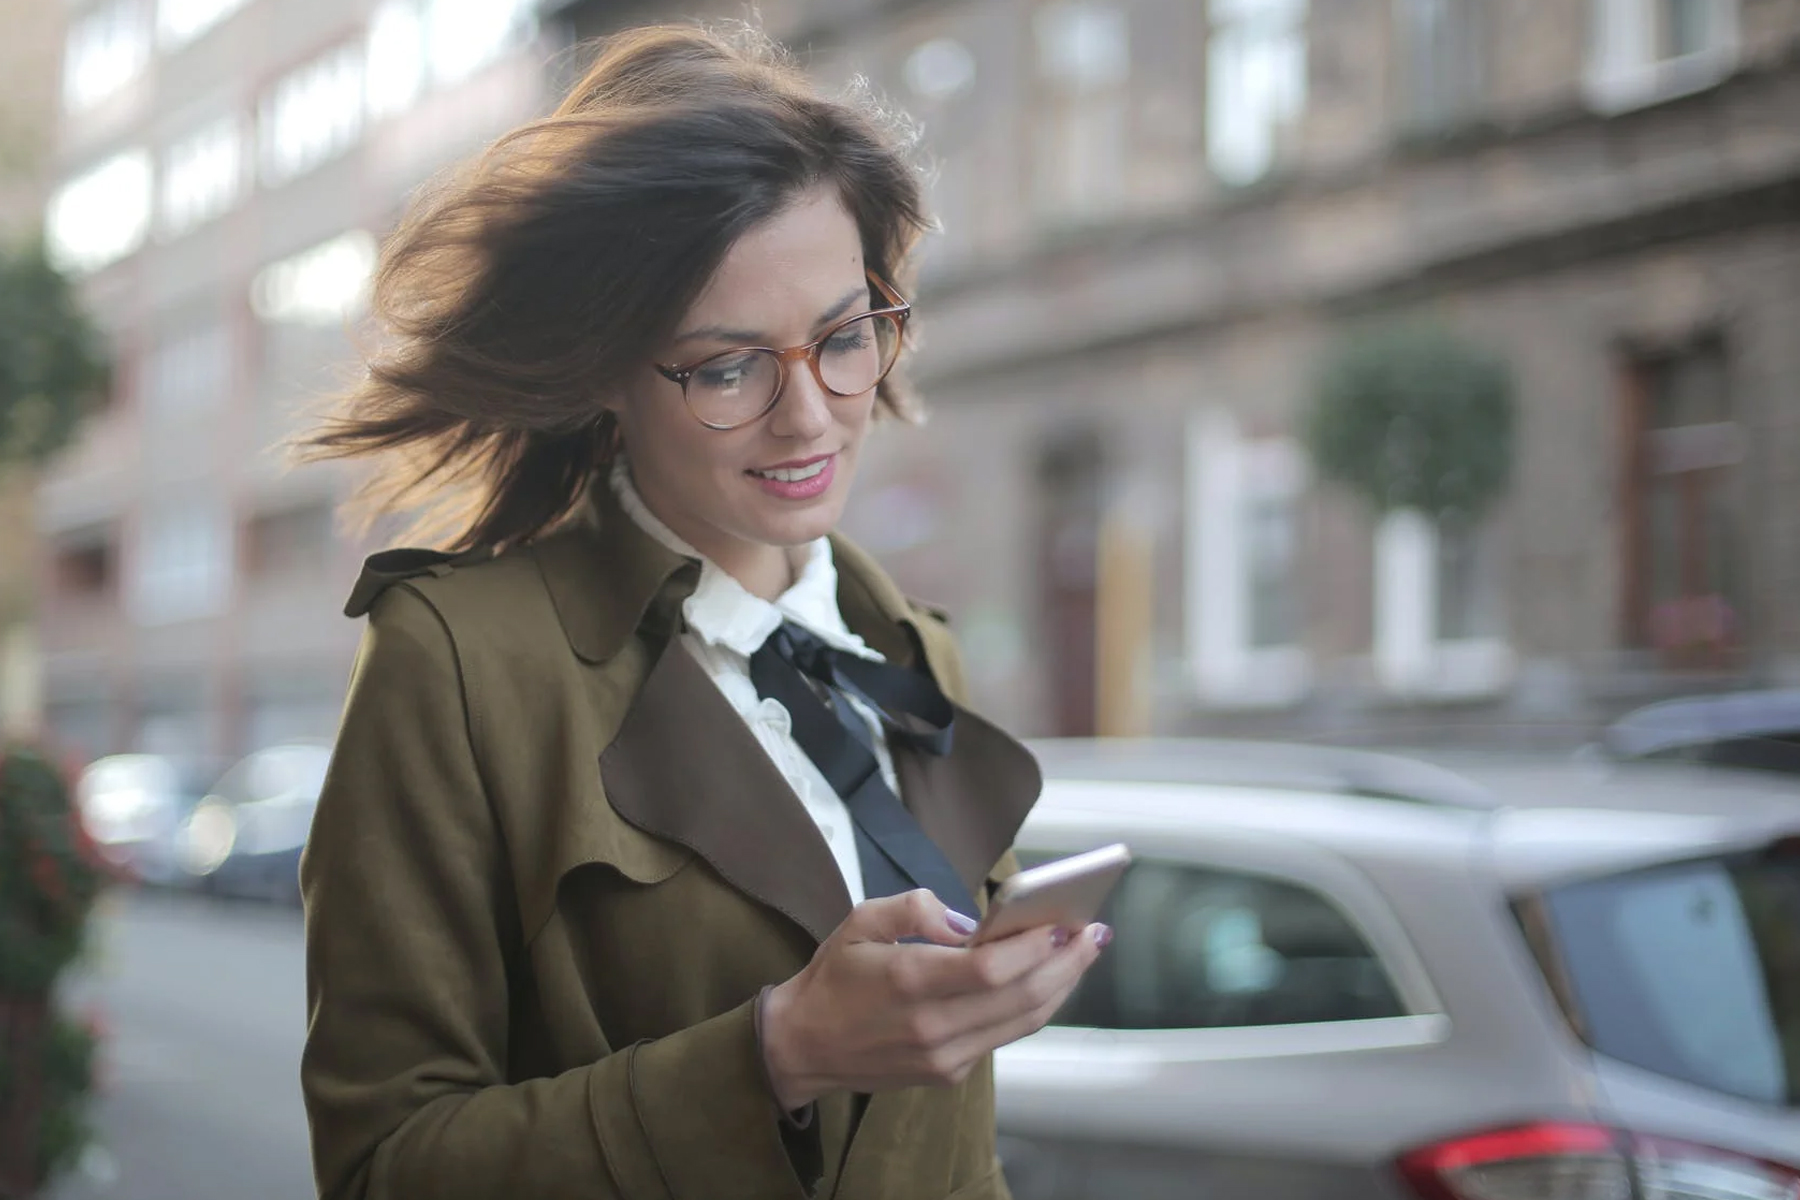 woman looking at smartphone whilst walking down a street